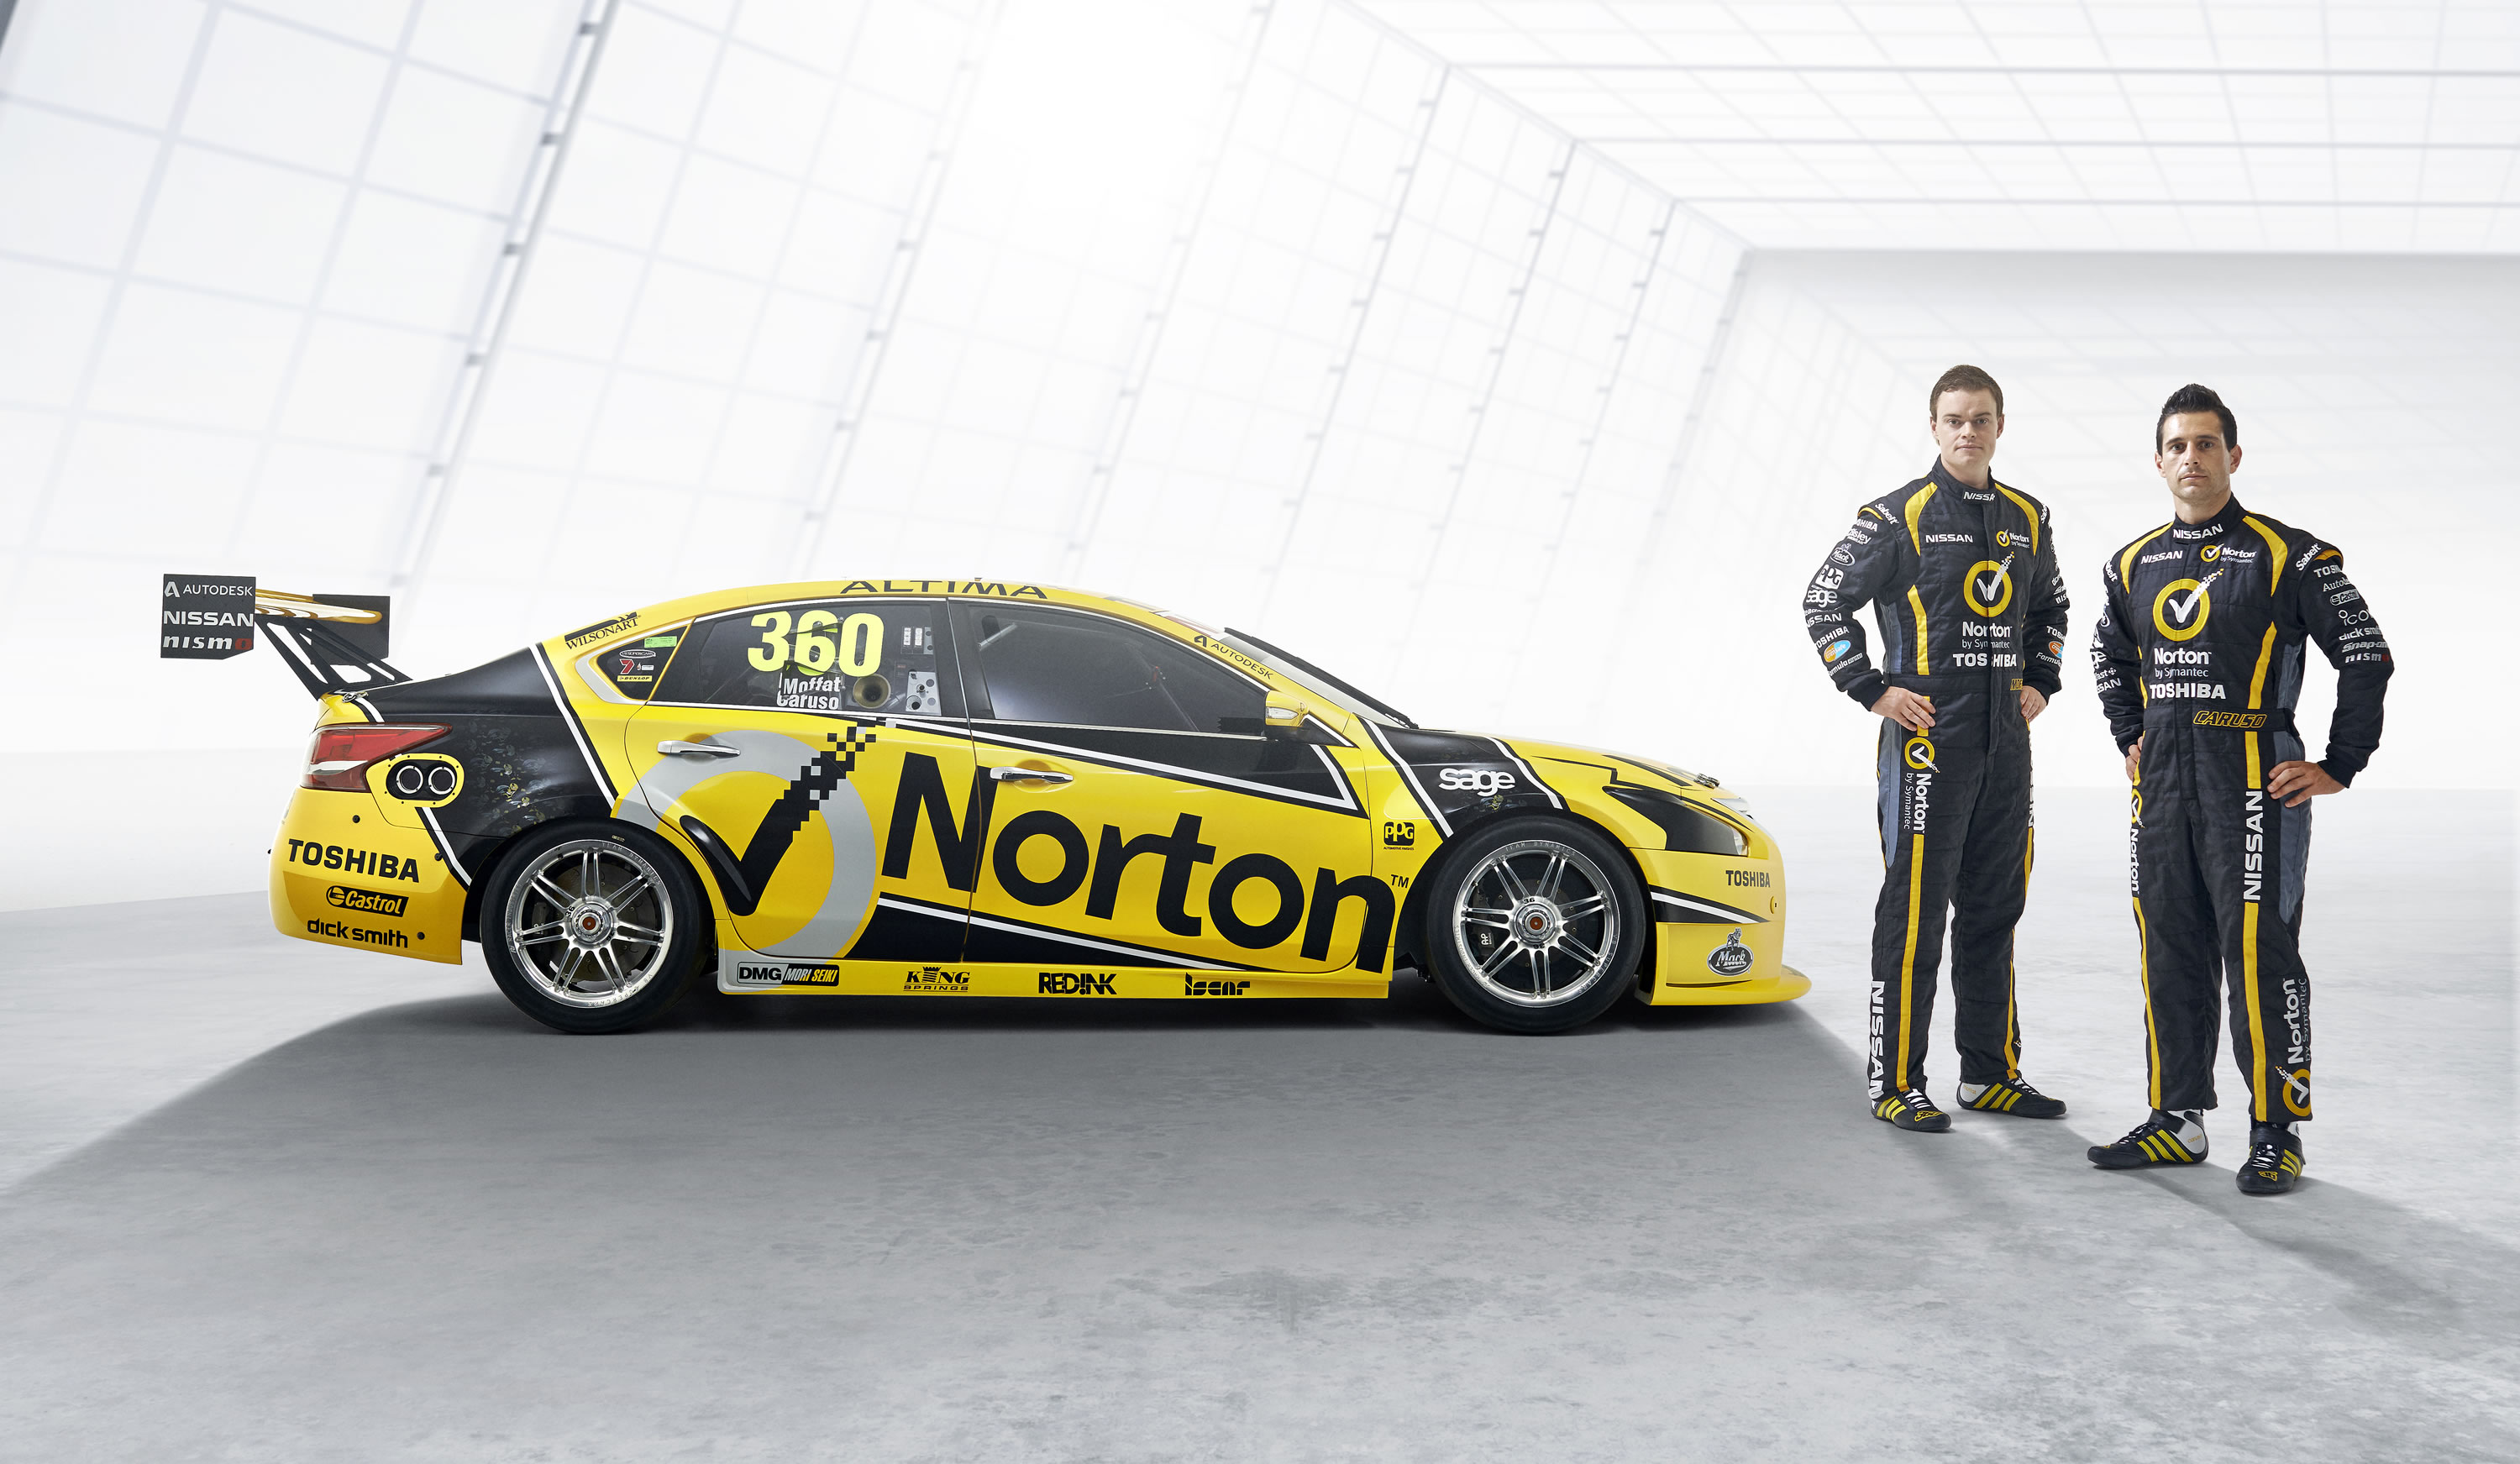 2014 nissan altima v8 supercars race car photos specs and review rs the new look nissan altima v8 supercars features smaller scallops on the front bar sciox Images